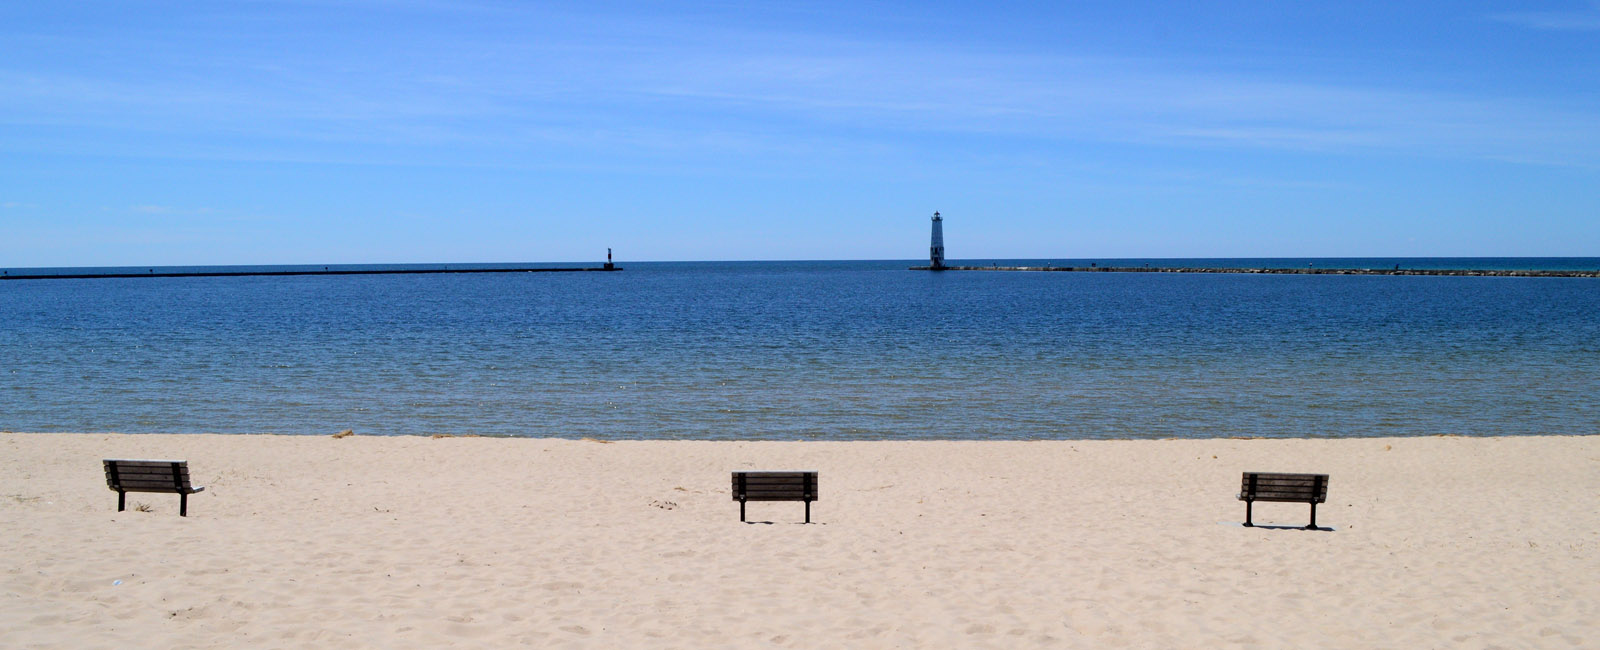 Lake Michigan welcomes the weary traveler.